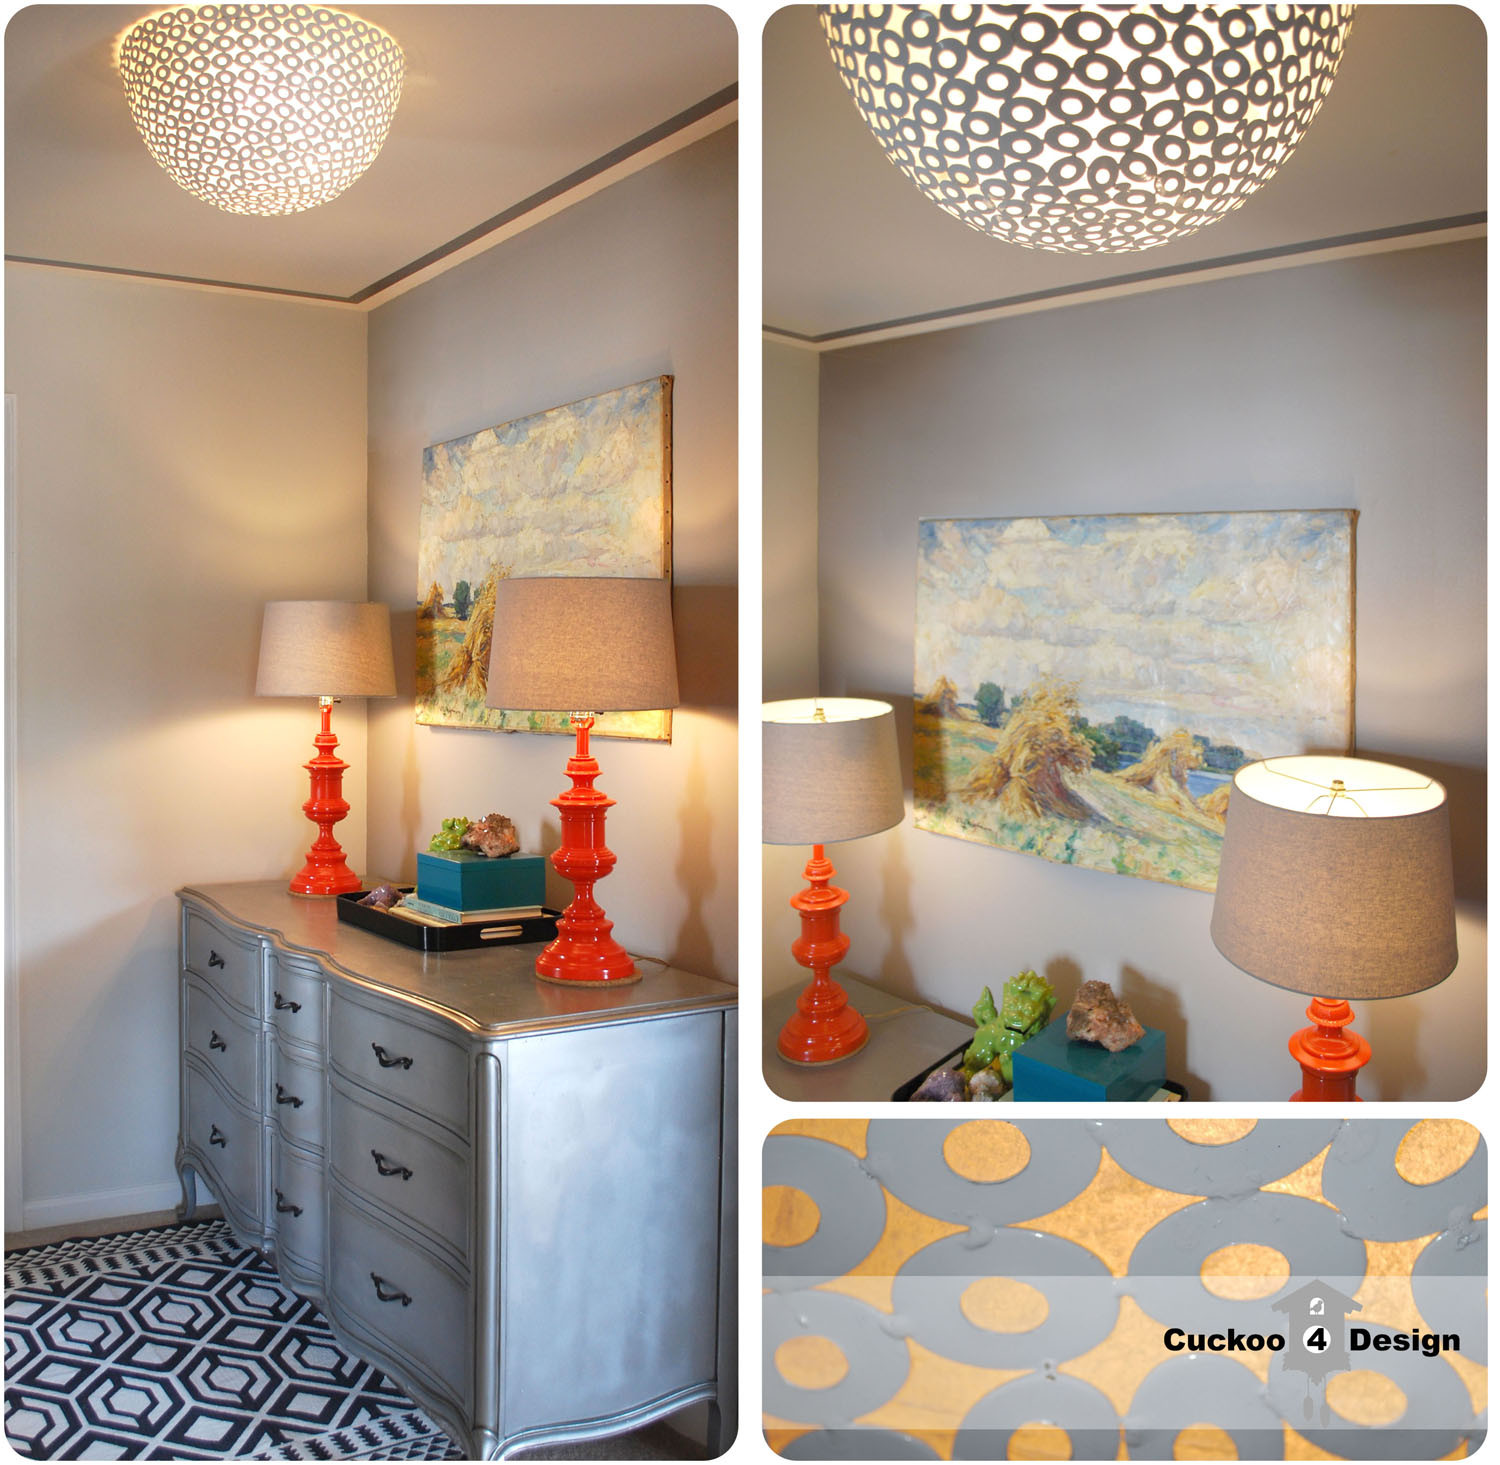 Best ideas about DIY Ceiling Lighting . Save or Pin HomeGoods clearance bowl as DIY ceiling fixture Now.